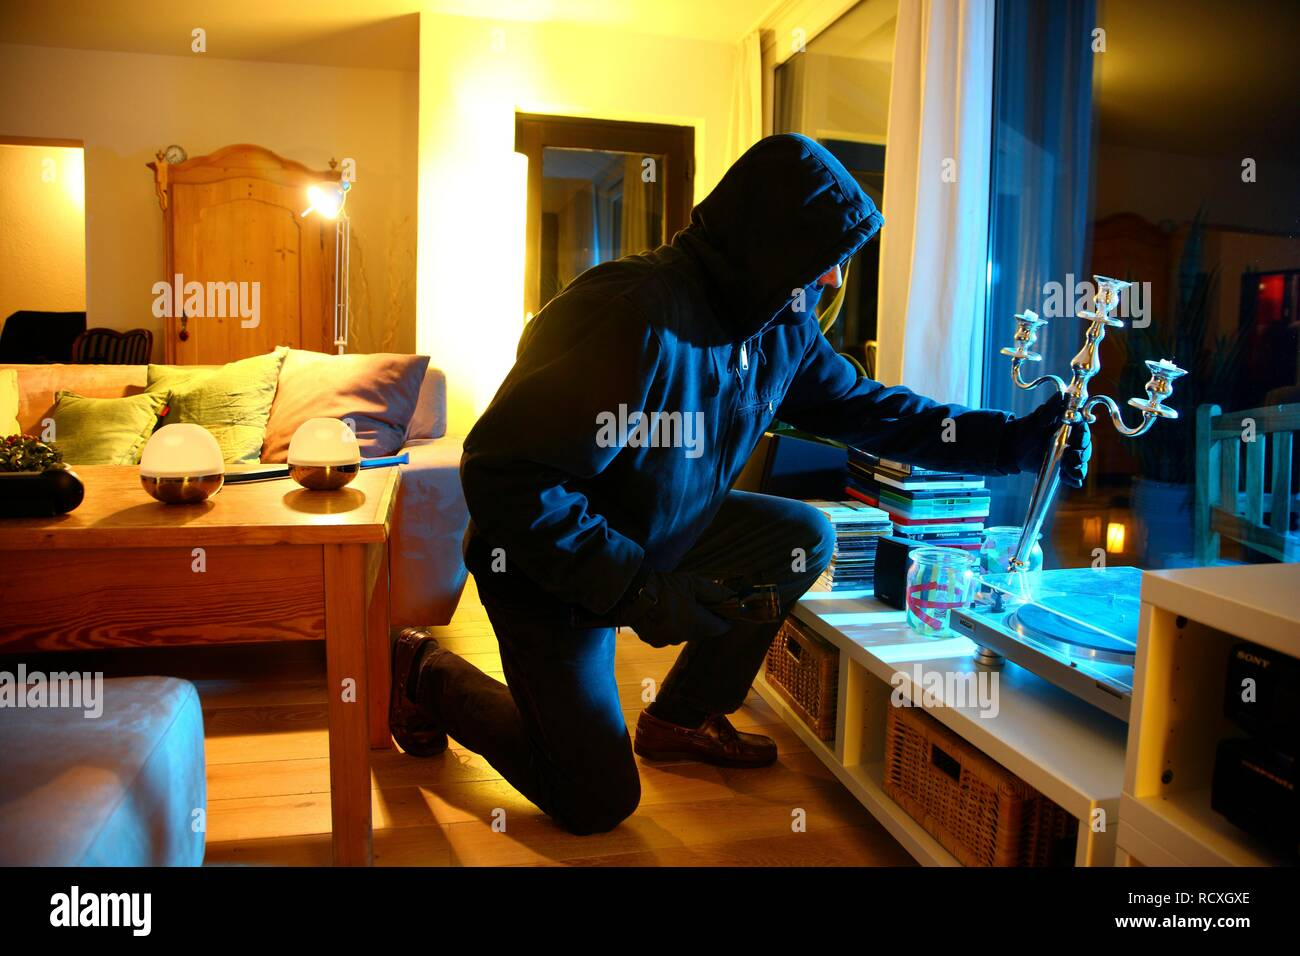 Burglar enters apartment, searches the rooms for valuables, symbolic image for domestic burglary - Stock Image